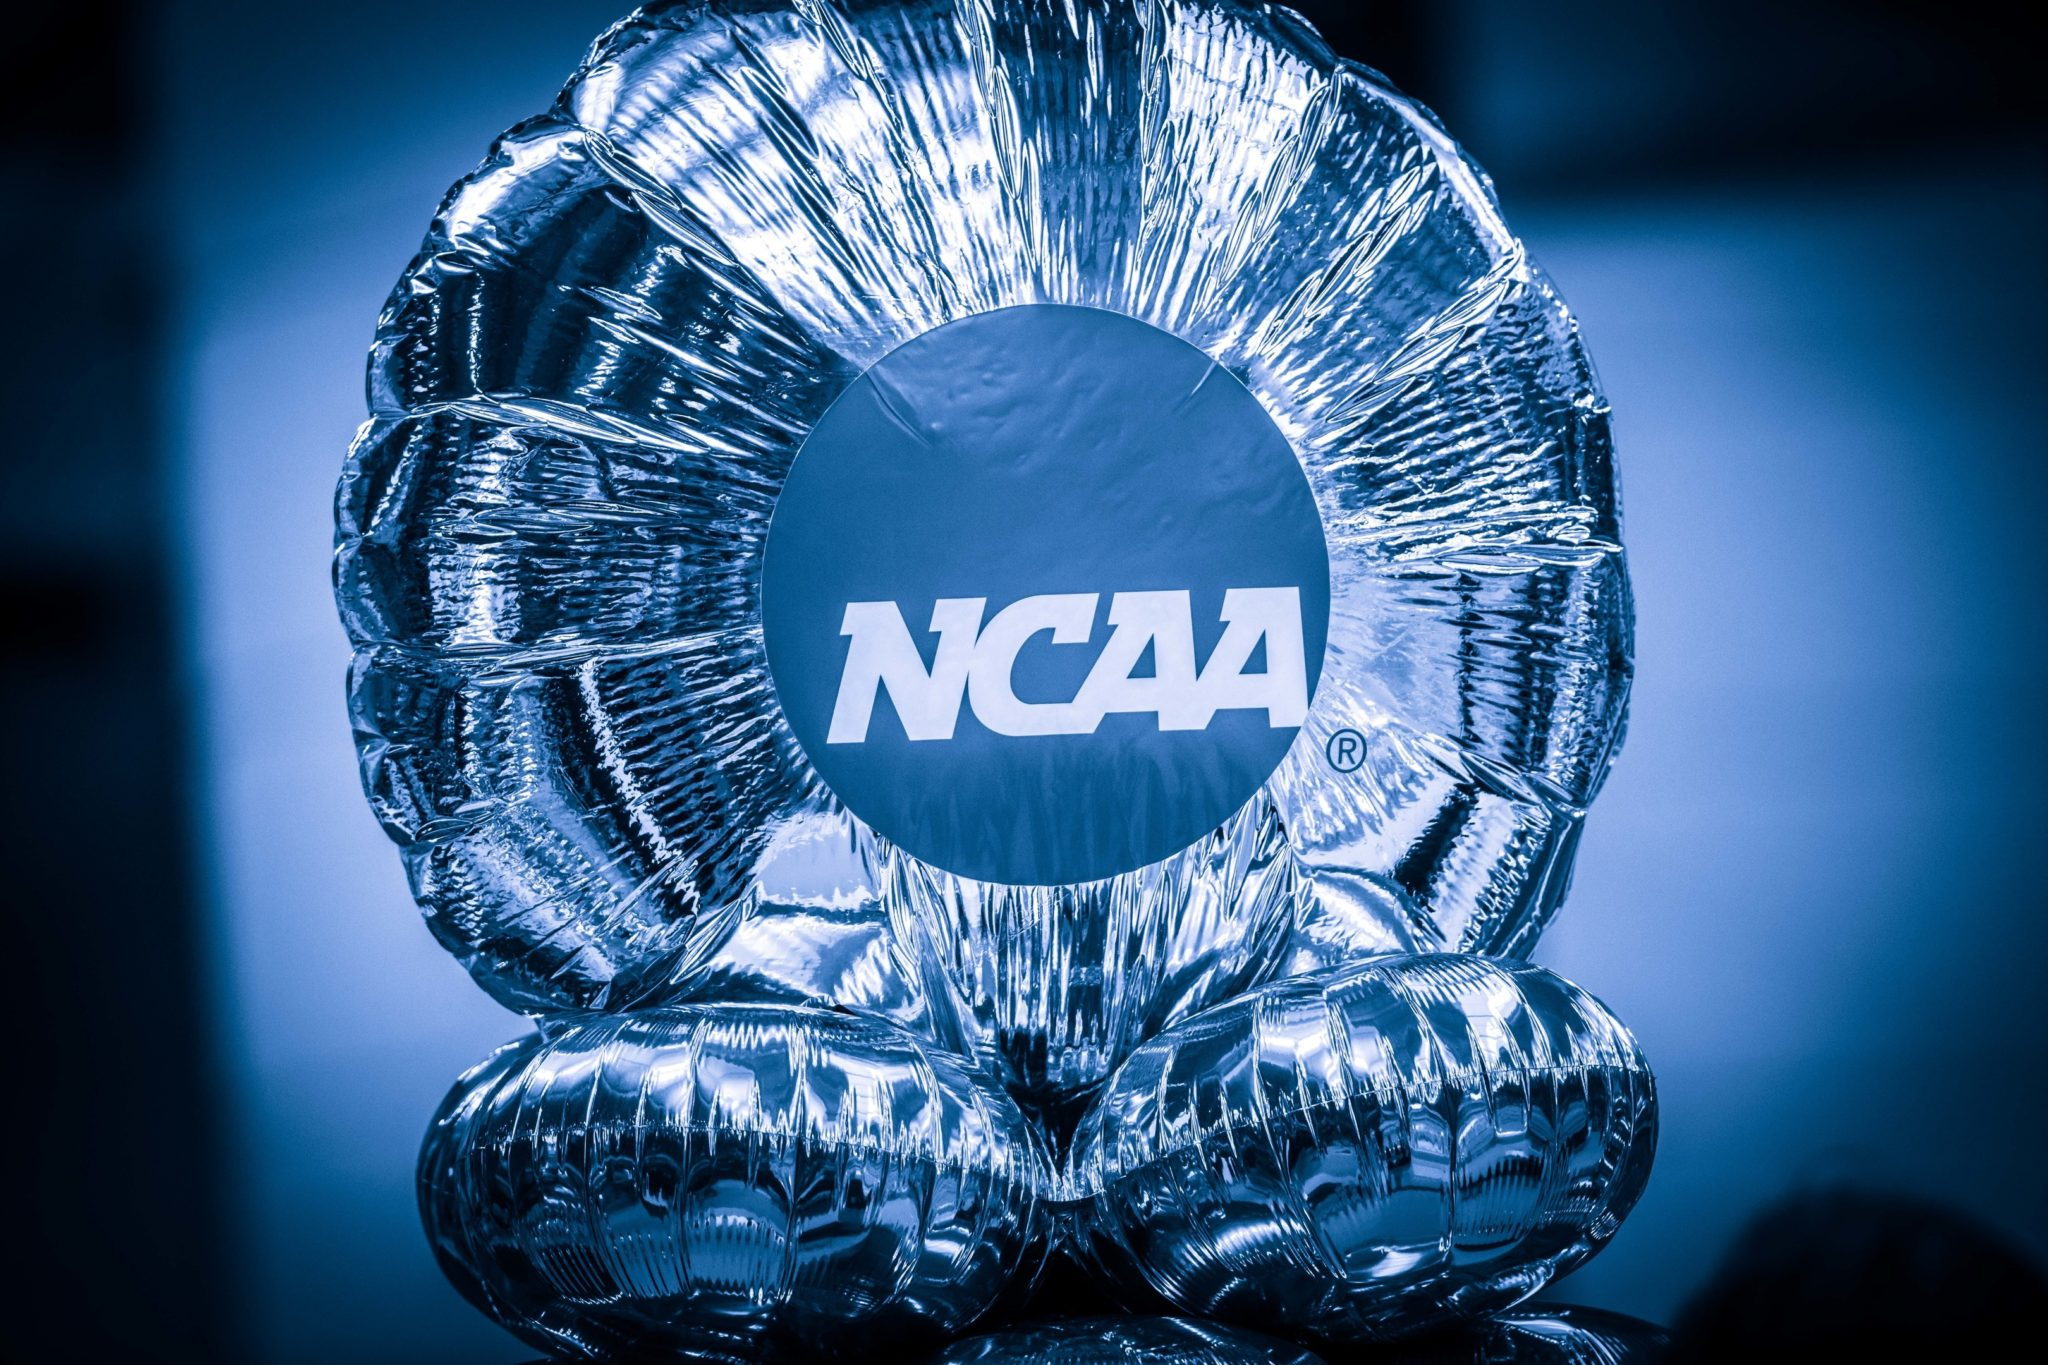 ncaa rules on dating